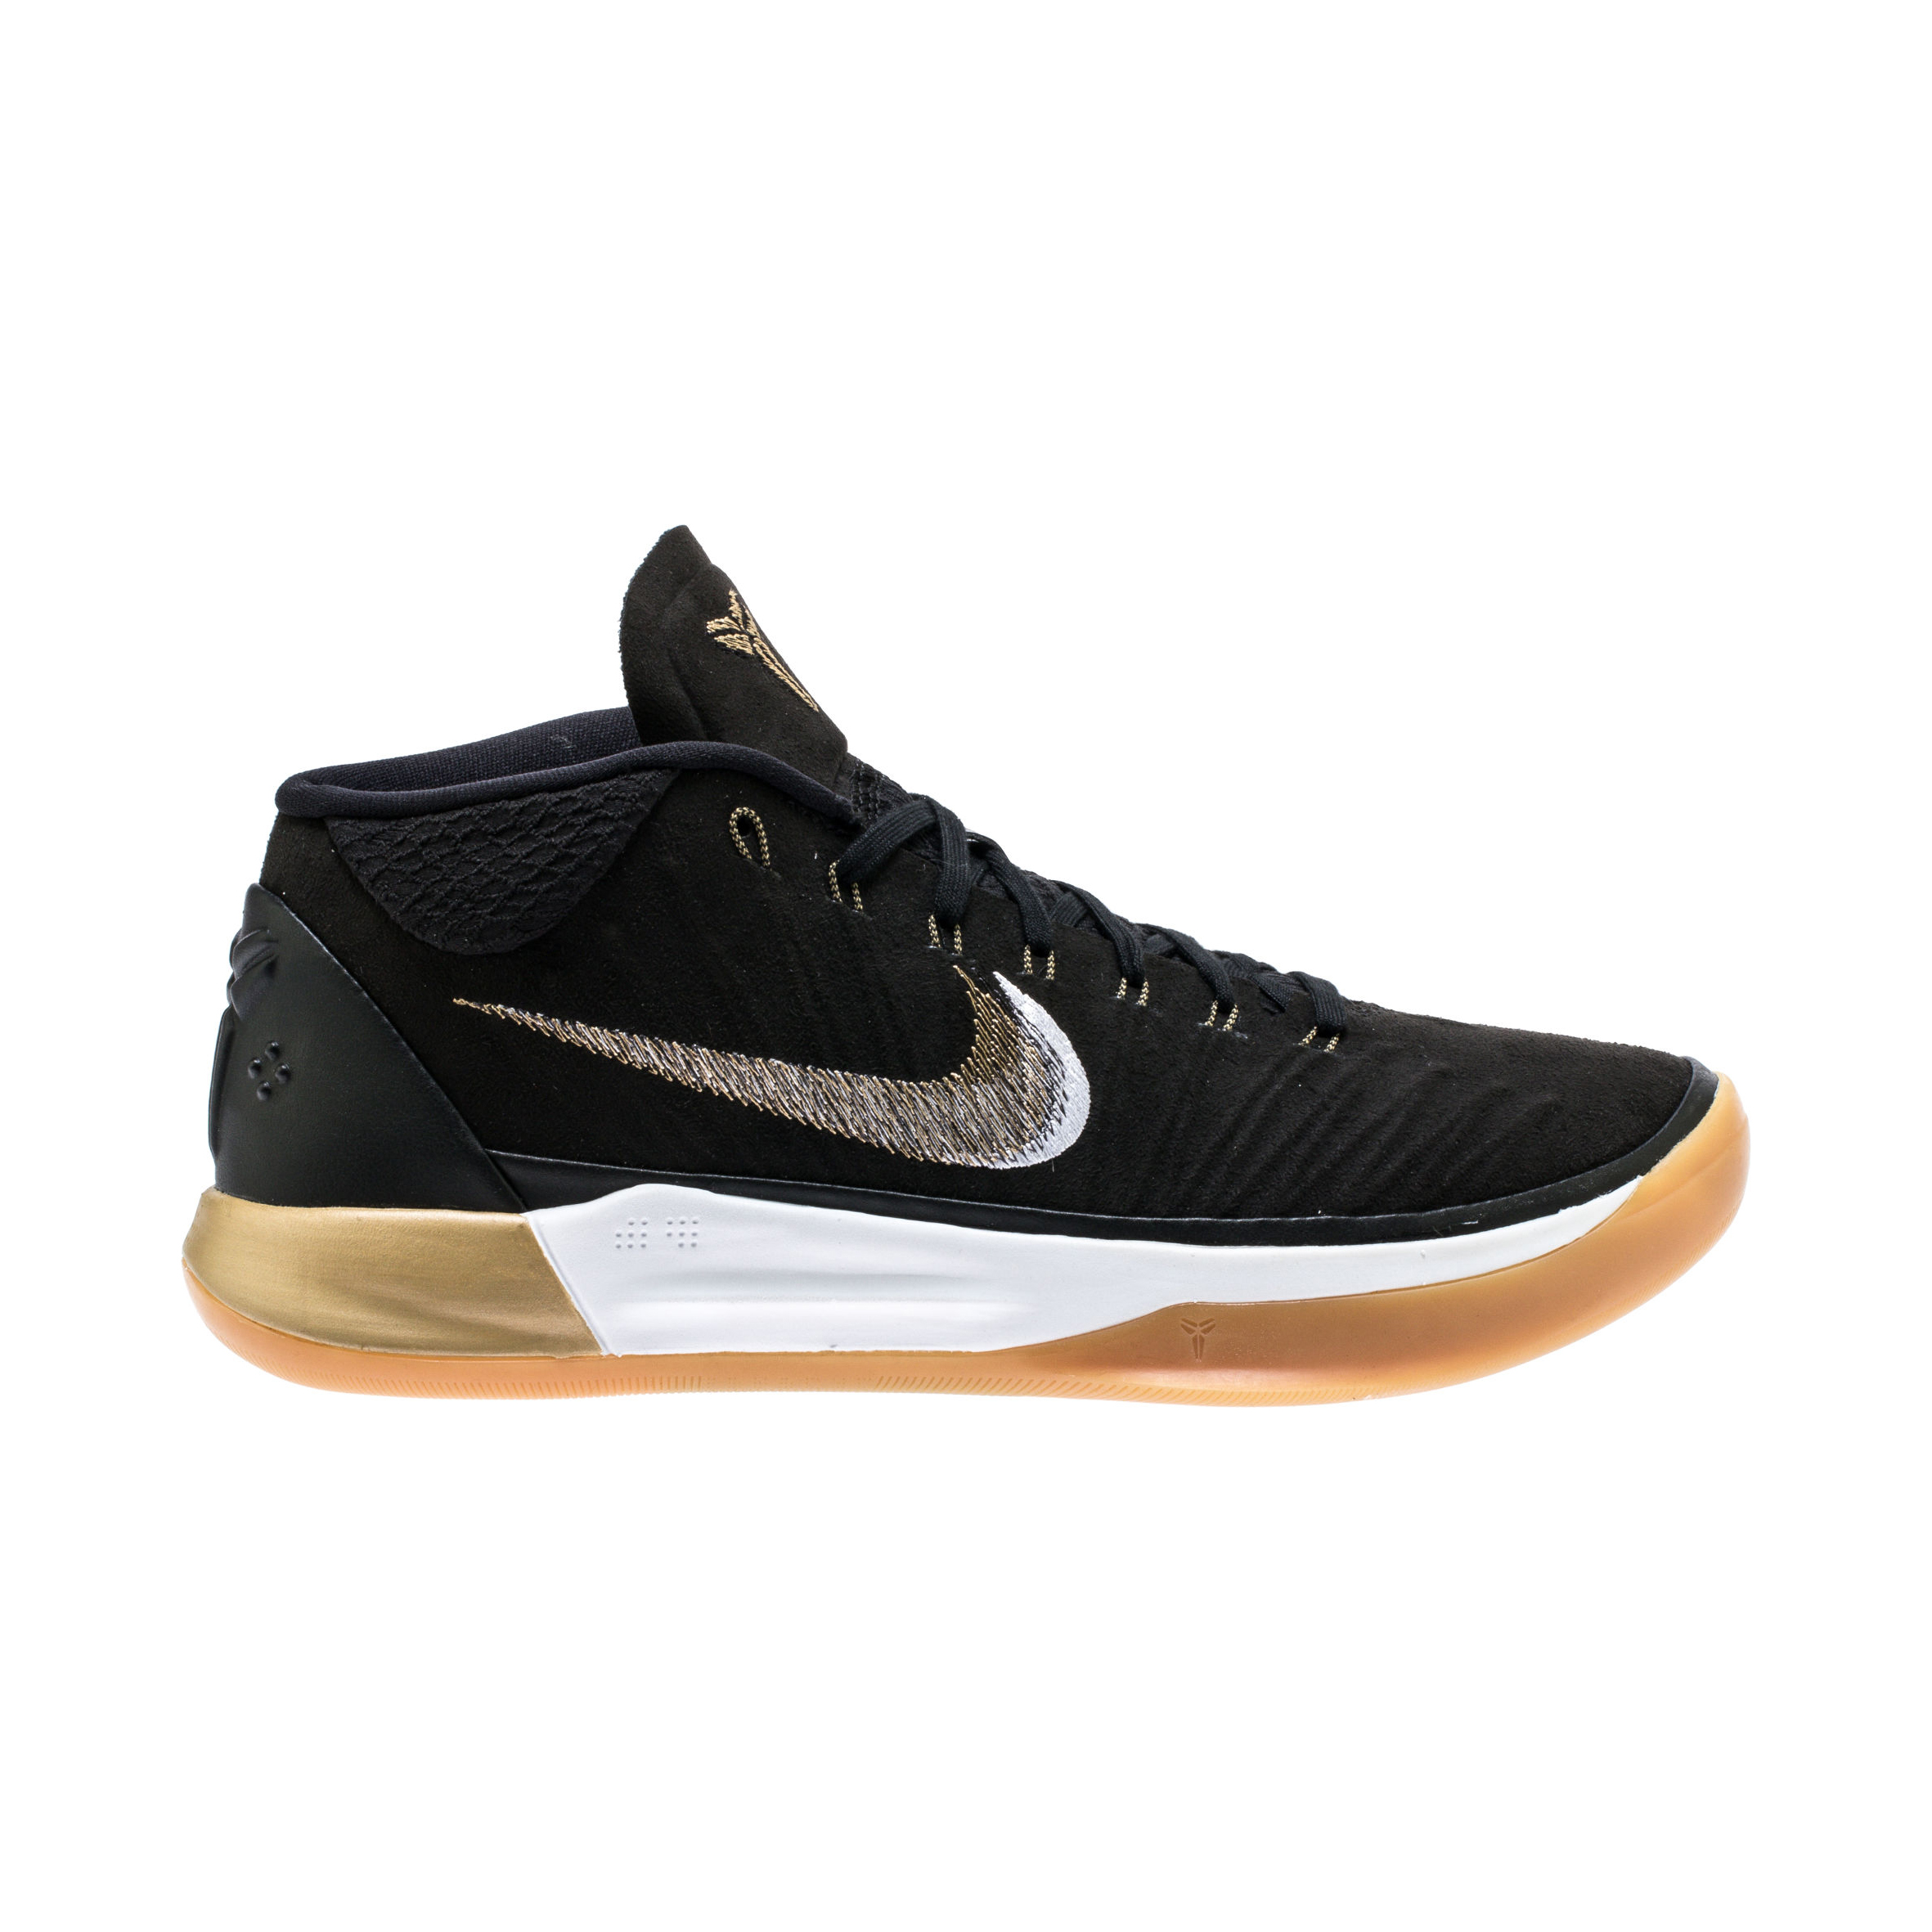 the latest 21013 d1d3a Another Suede Nike Kobe AD Mid is Dropping Next Week ...